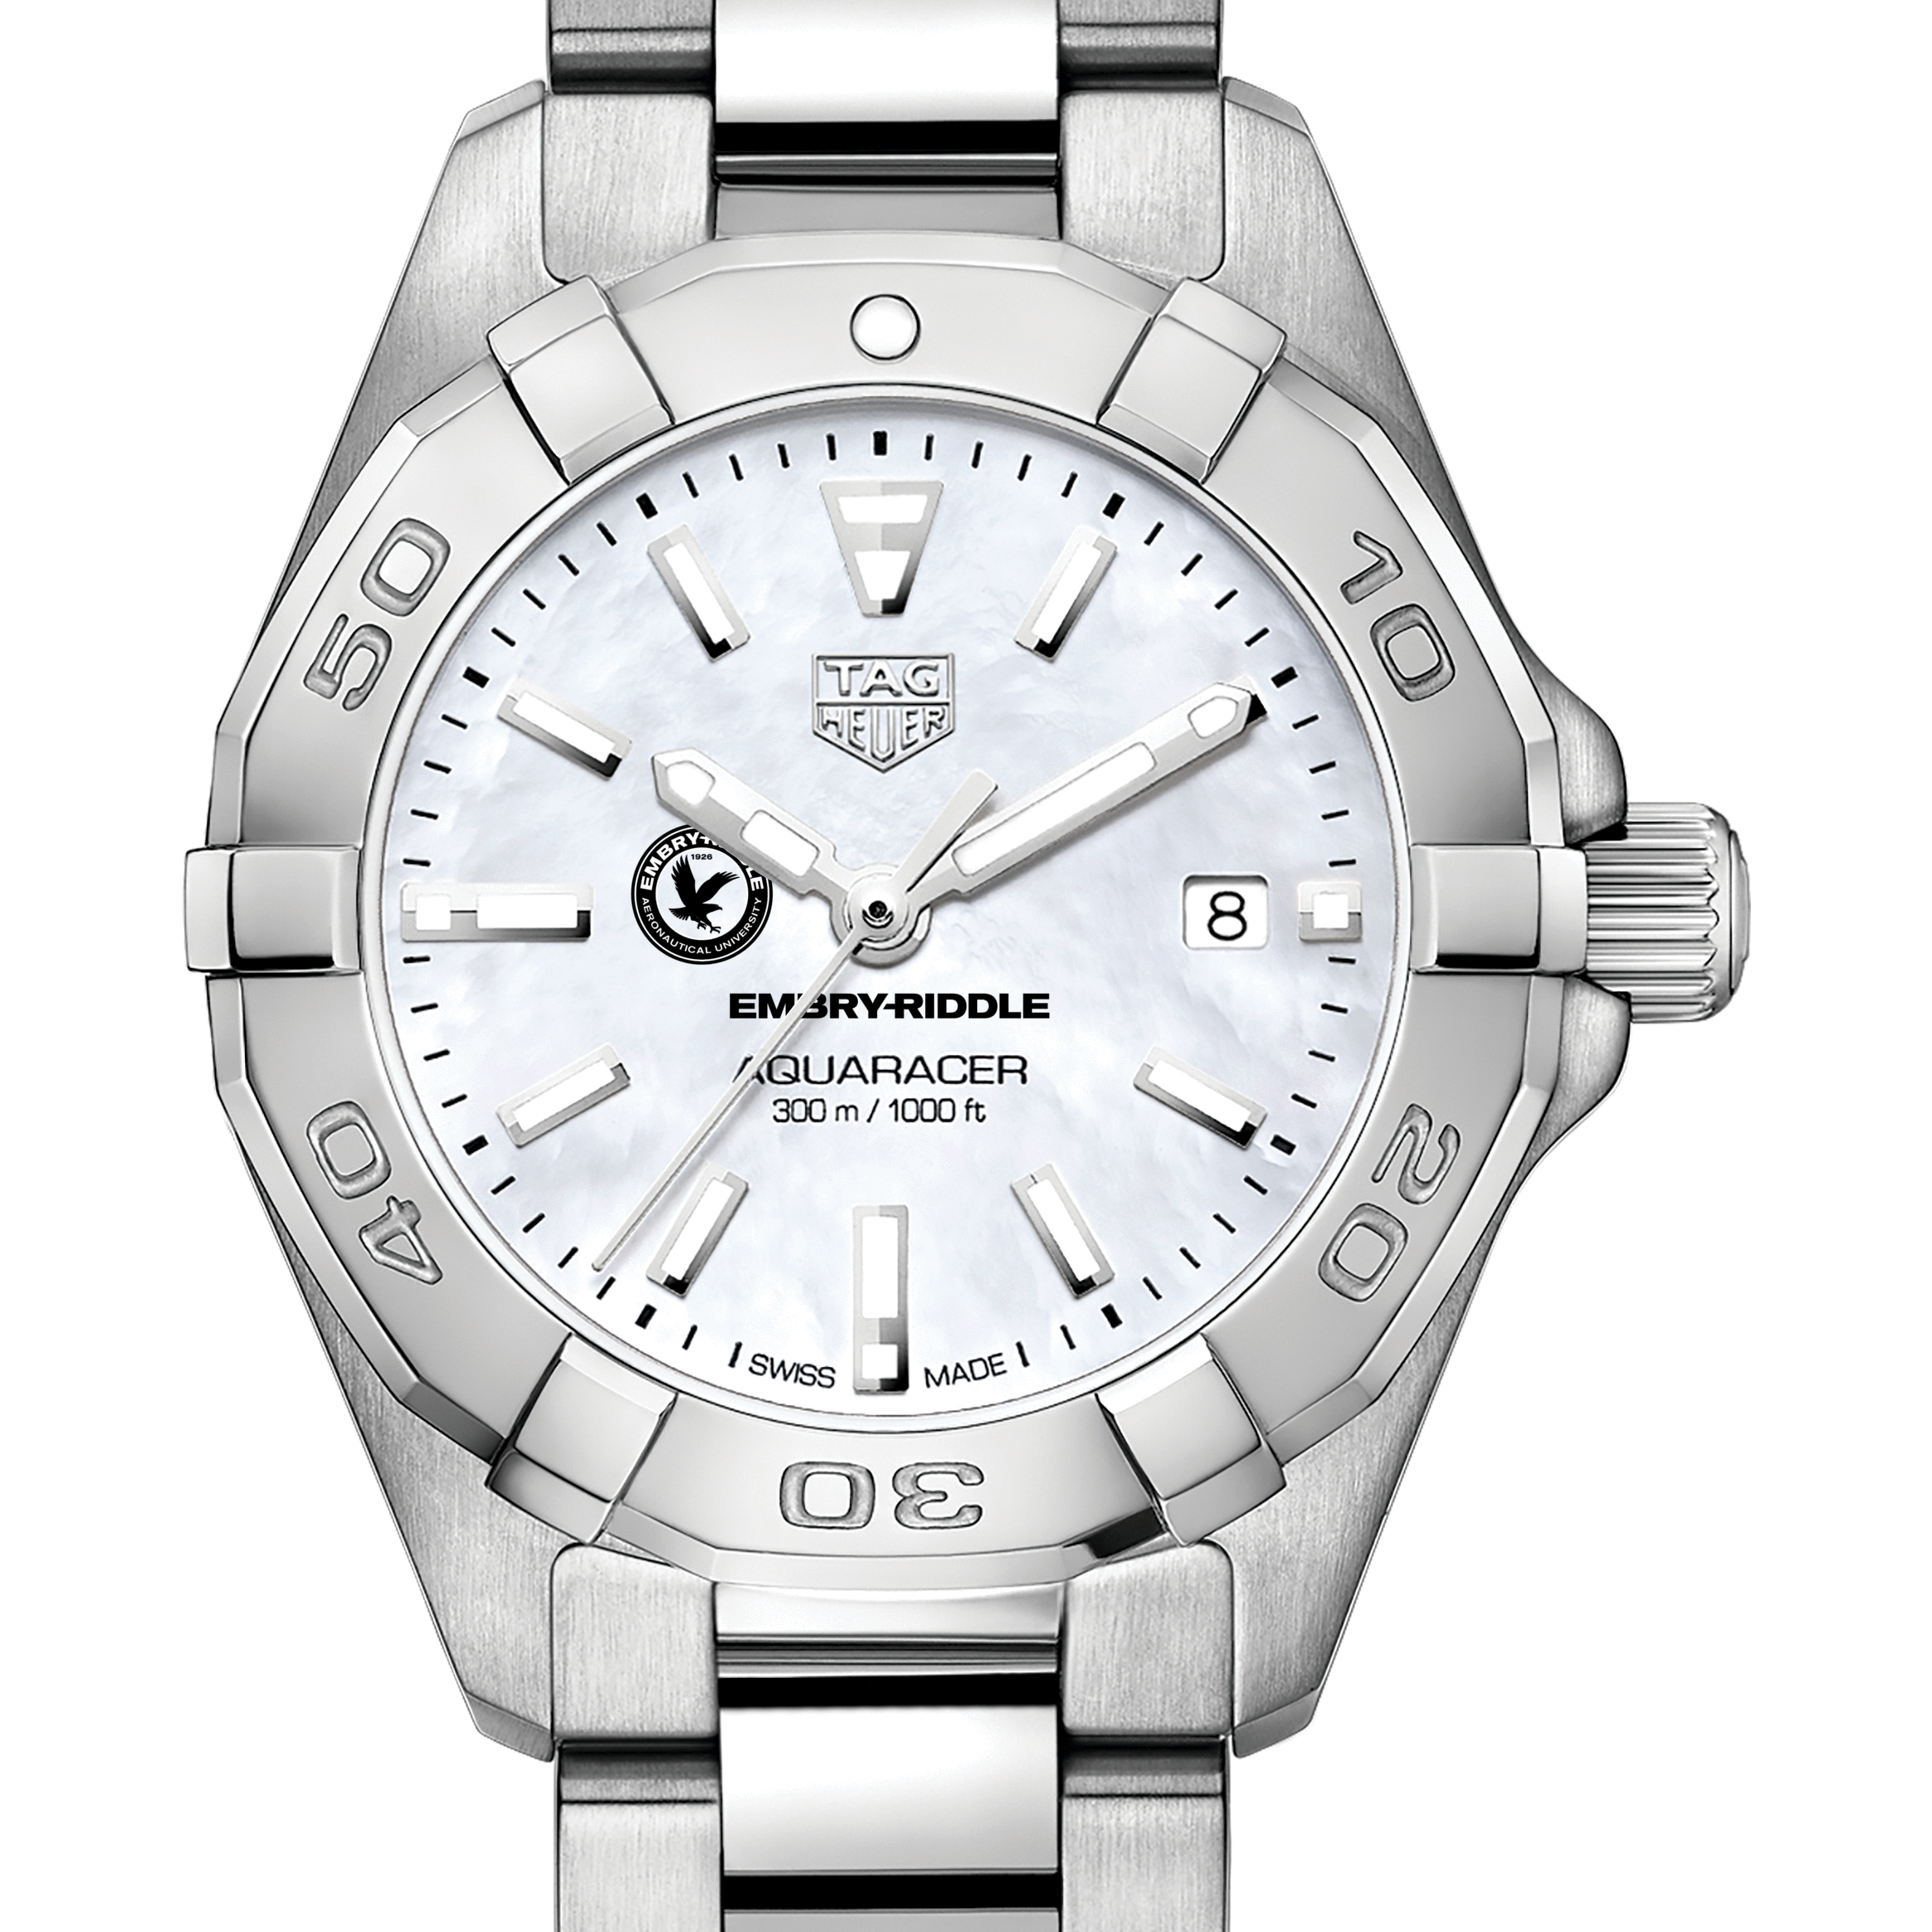 Embry-Riddle Women's TAG Heuer Steel Aquaracer w MOP Dial